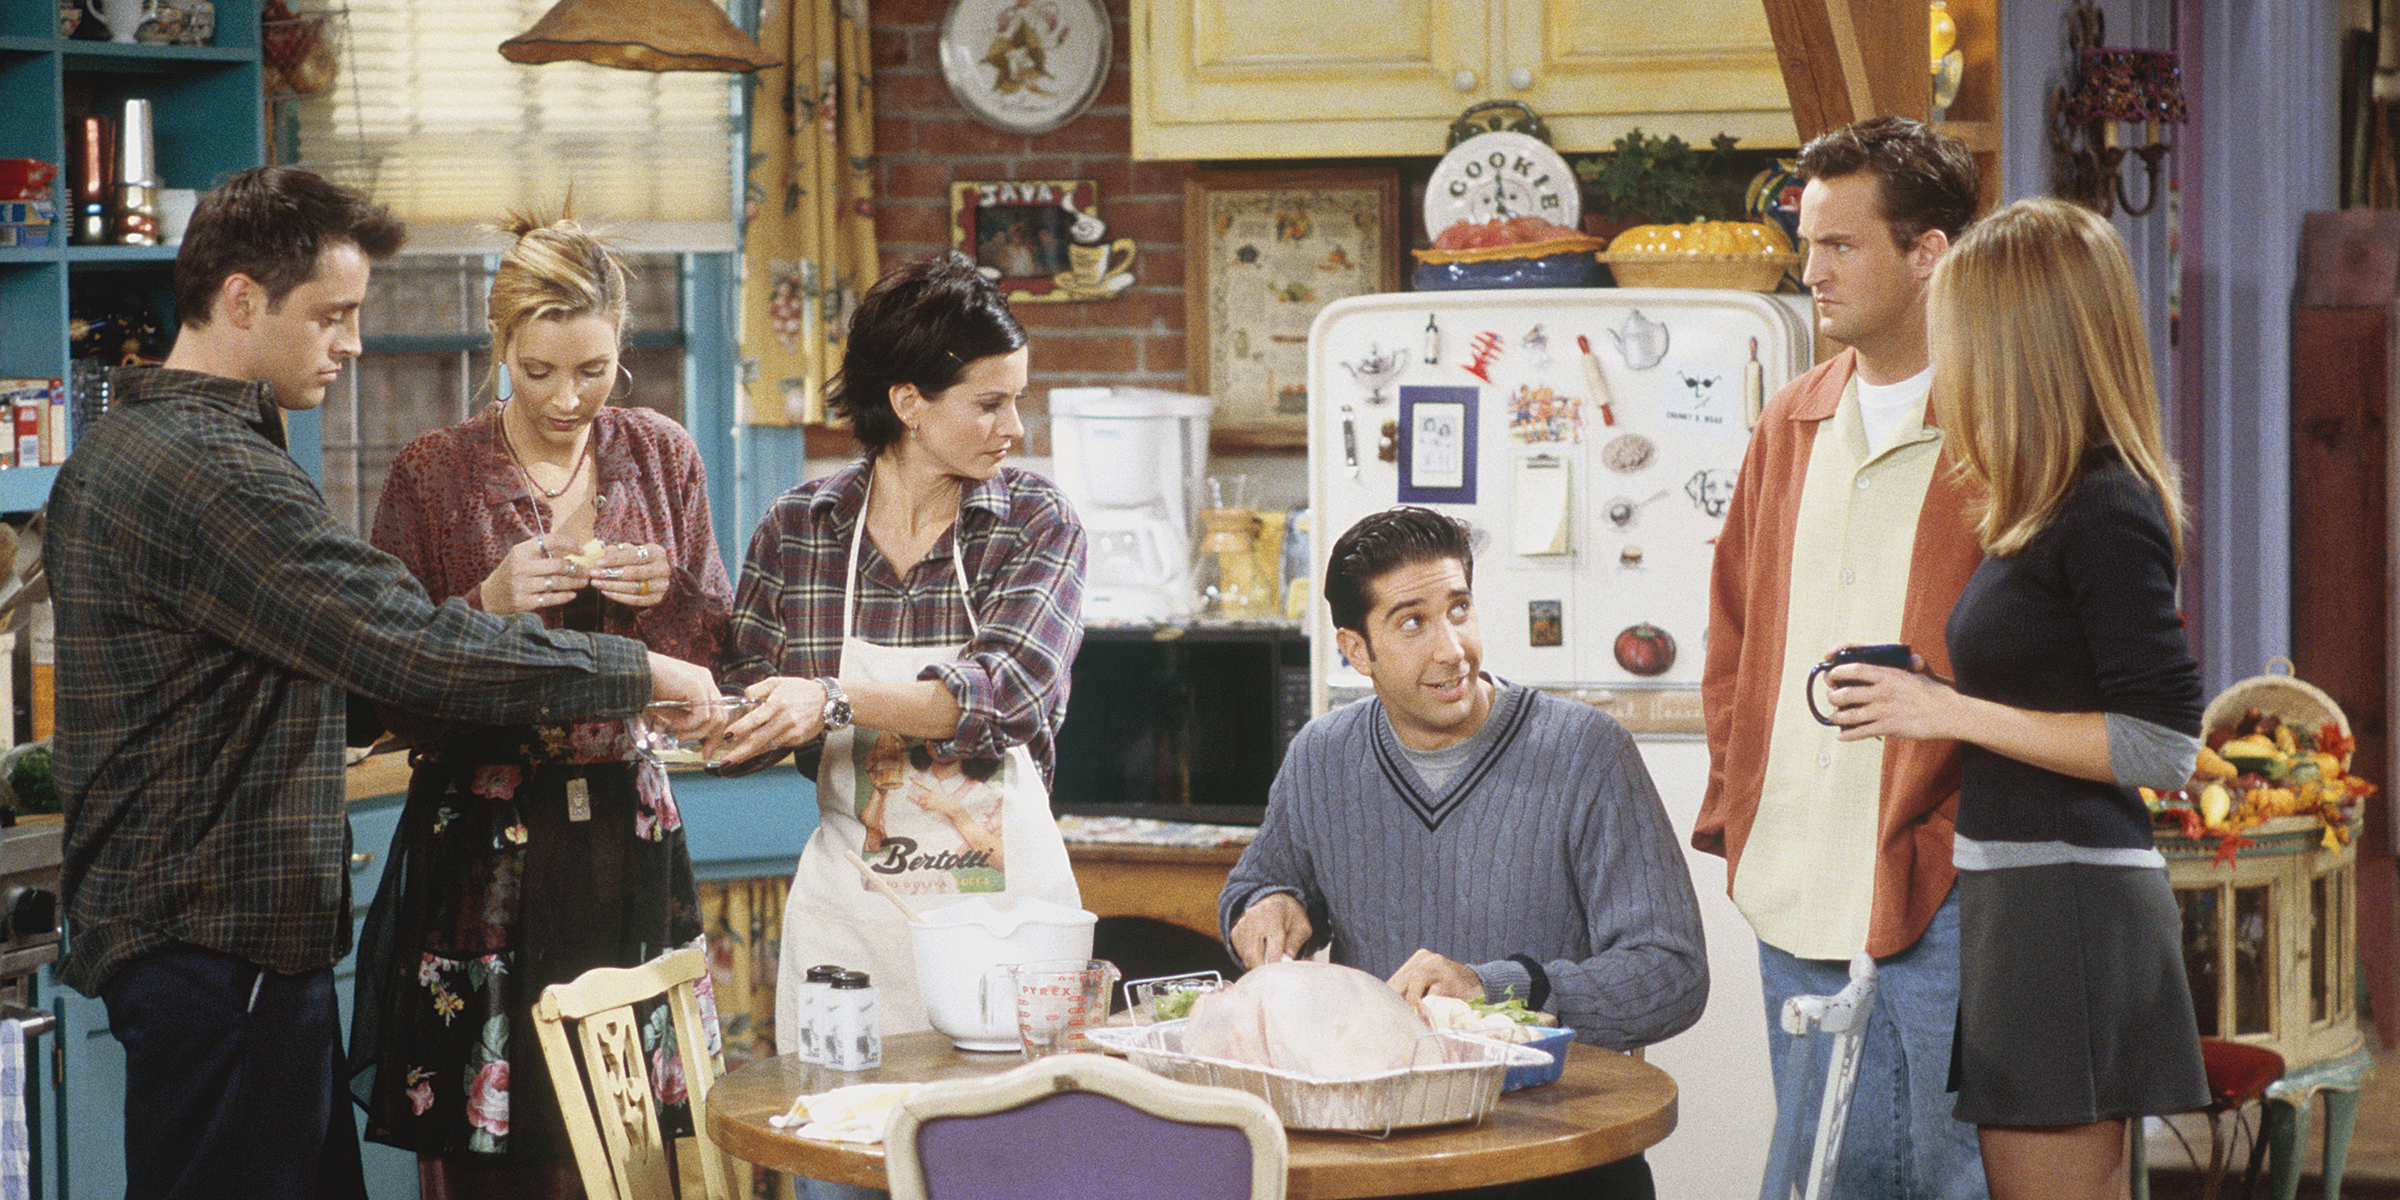 This 'Friends' tour includes a Thanksgiving feast that would make Monica proud